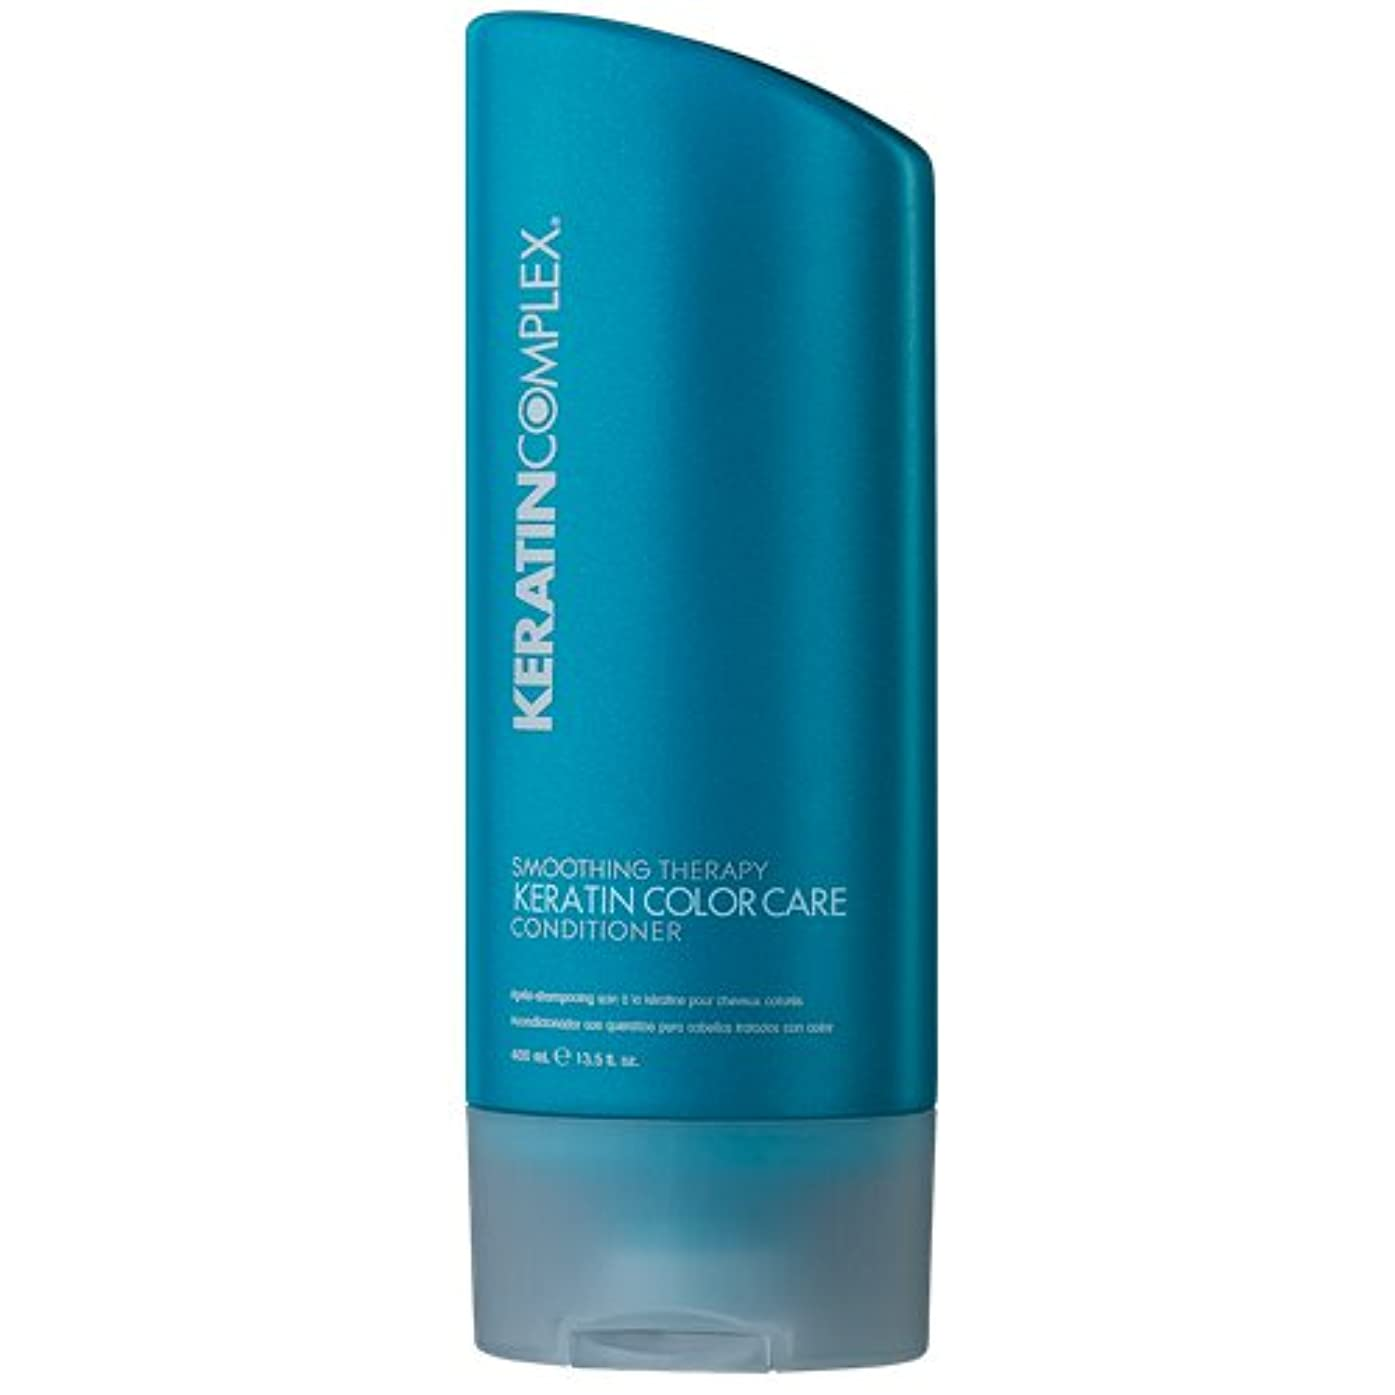 単独で粉砕する悔い改めSmoothing Therapy Keratin Color Care Conditioner (For All Hair Types) - 400ml/13.5oz